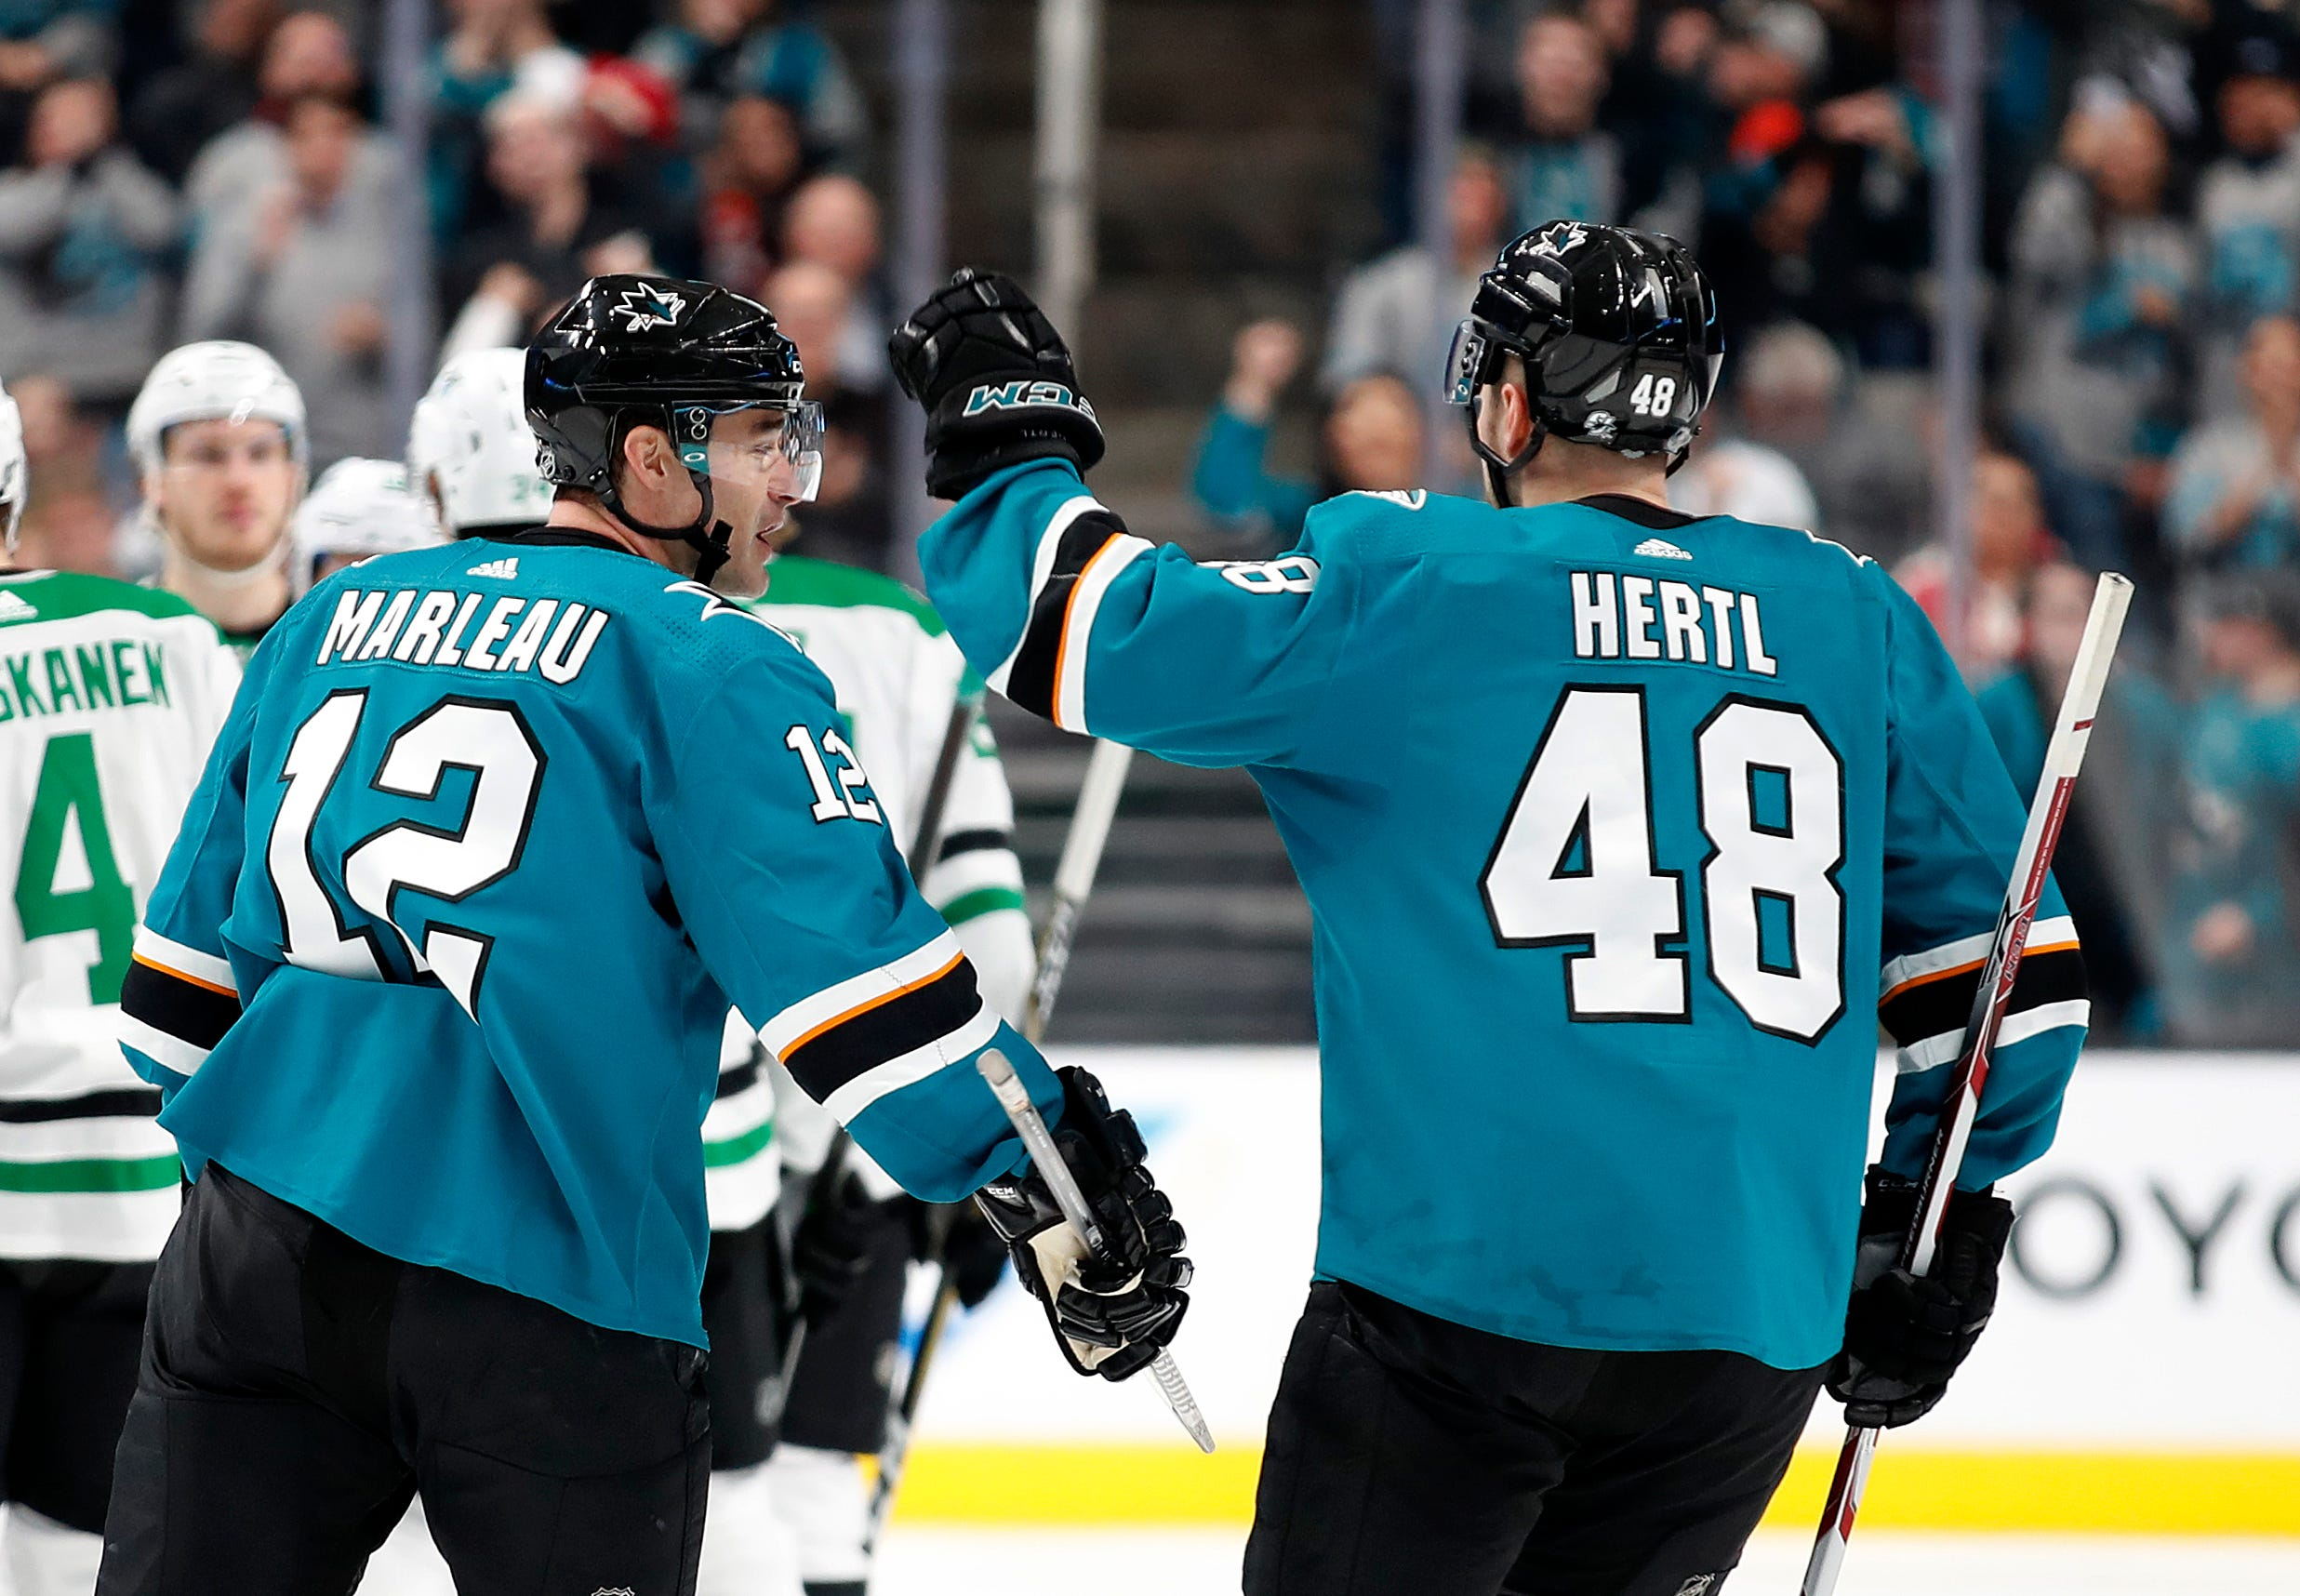 Burns, Marleau Lead Sharks To 2-1 Win Over Stars